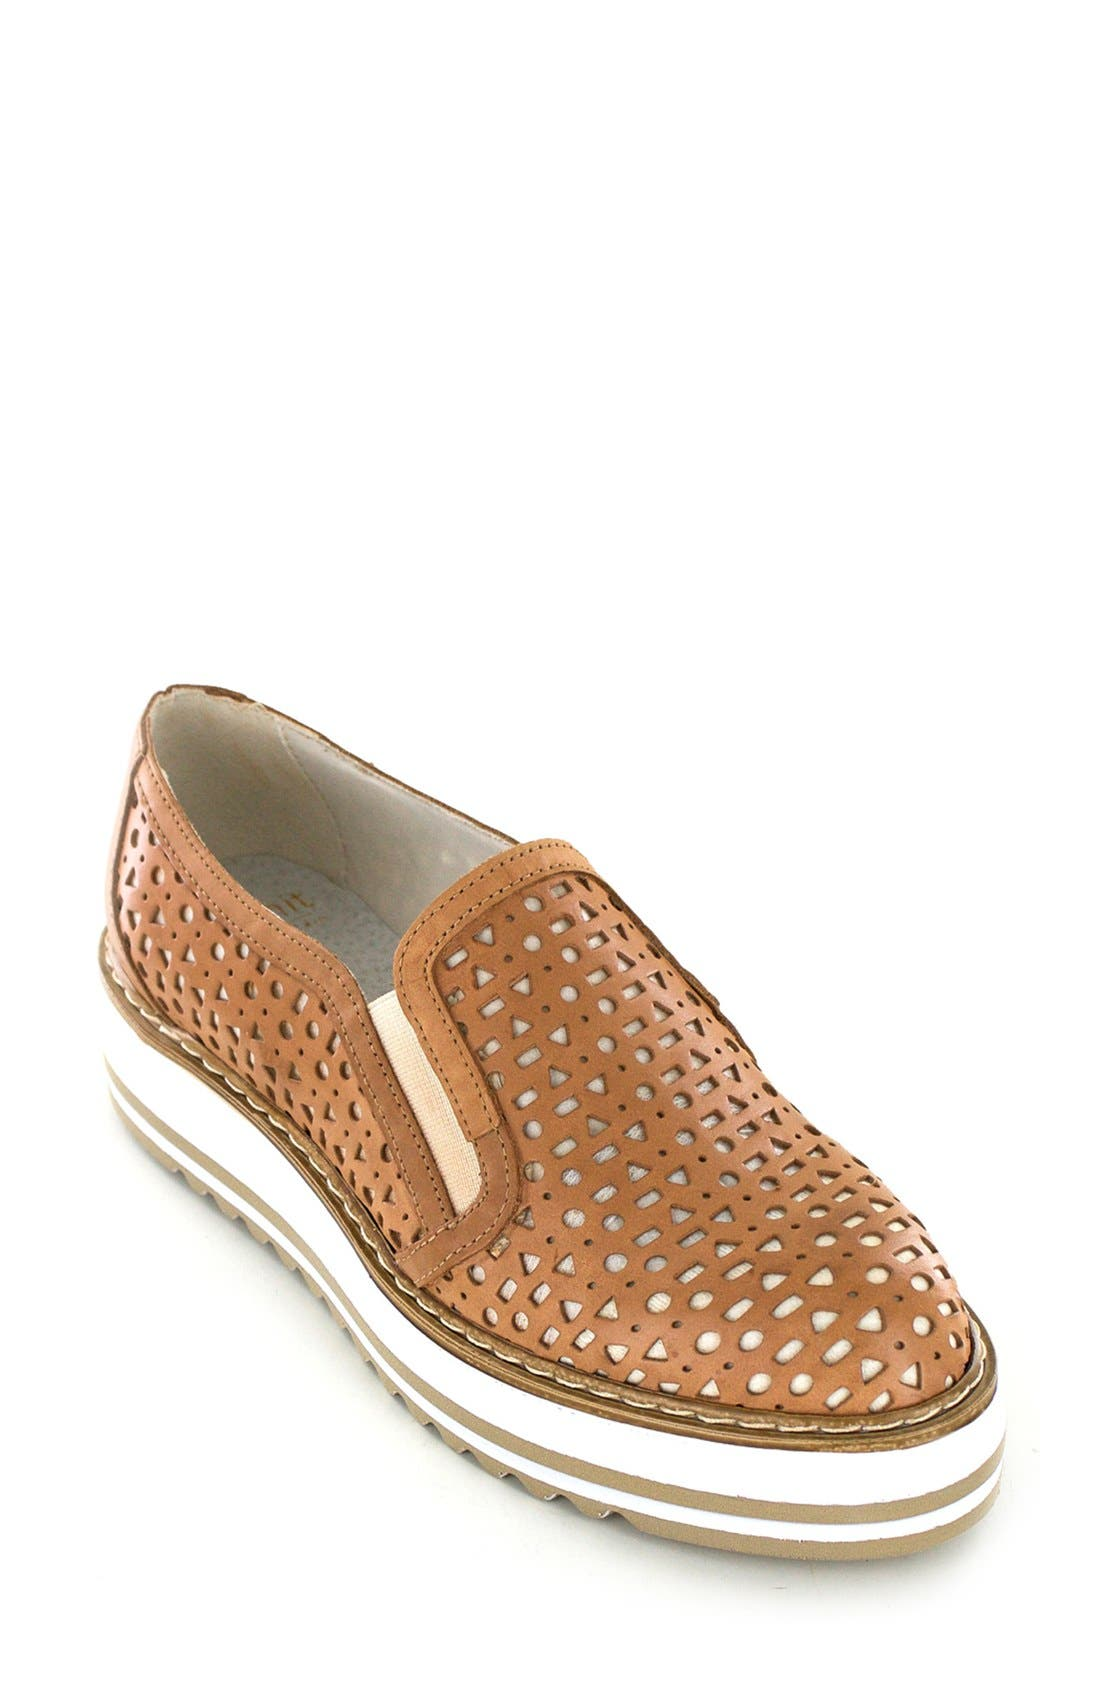 SUMMIT 'Braxton' Platform Slip-On